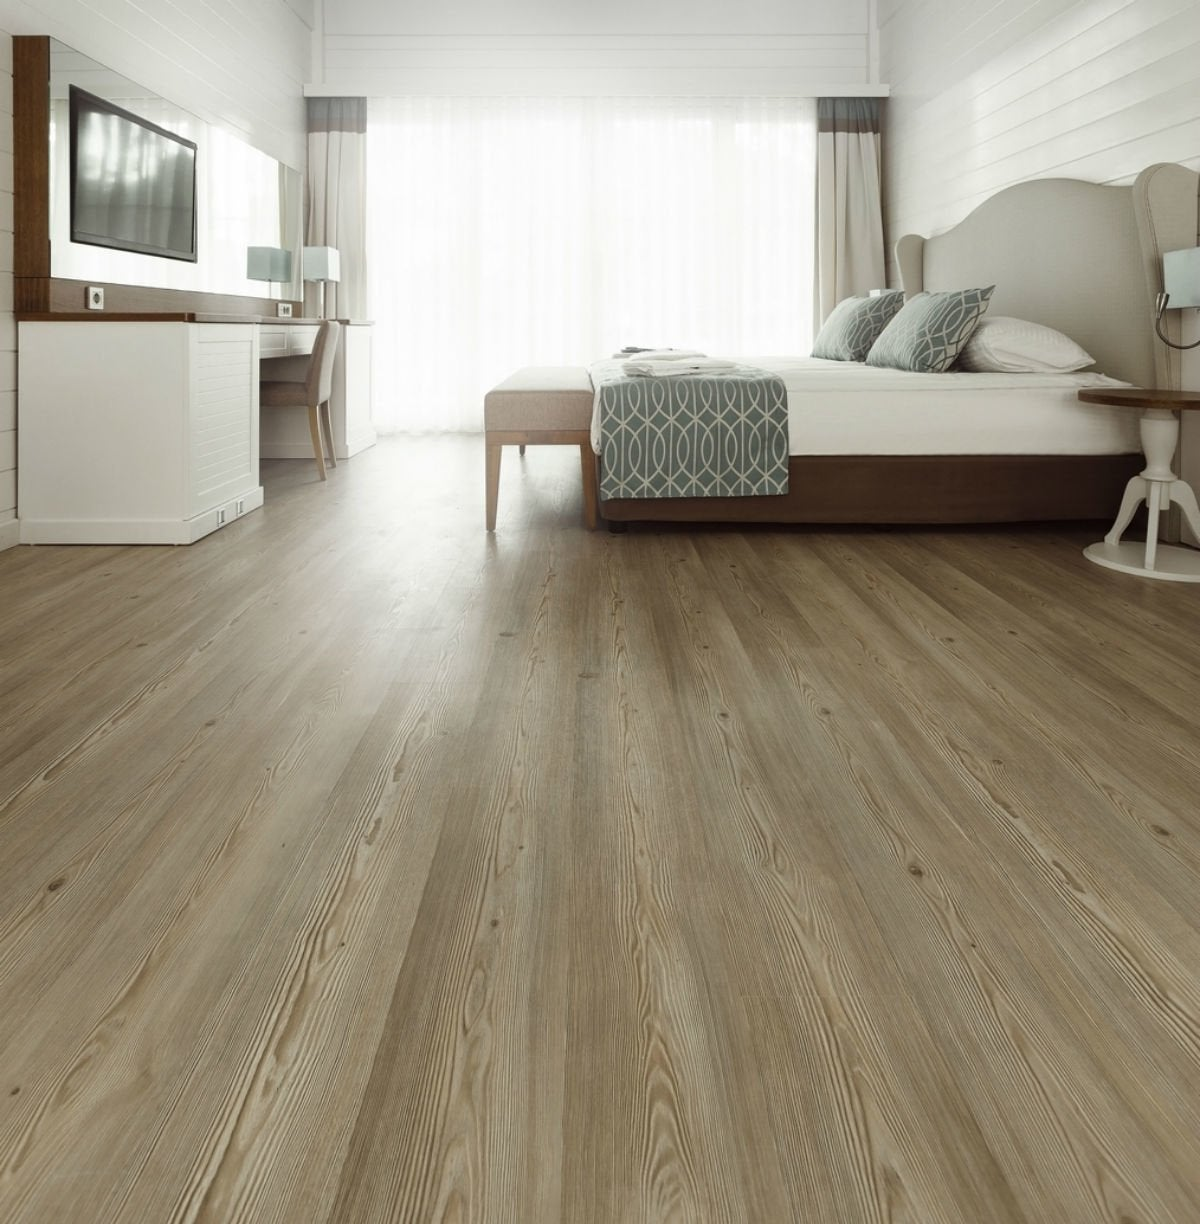 Laminate Vs Hardwood Flooring Resale Value The Pros and Cons of Laminate Flooring